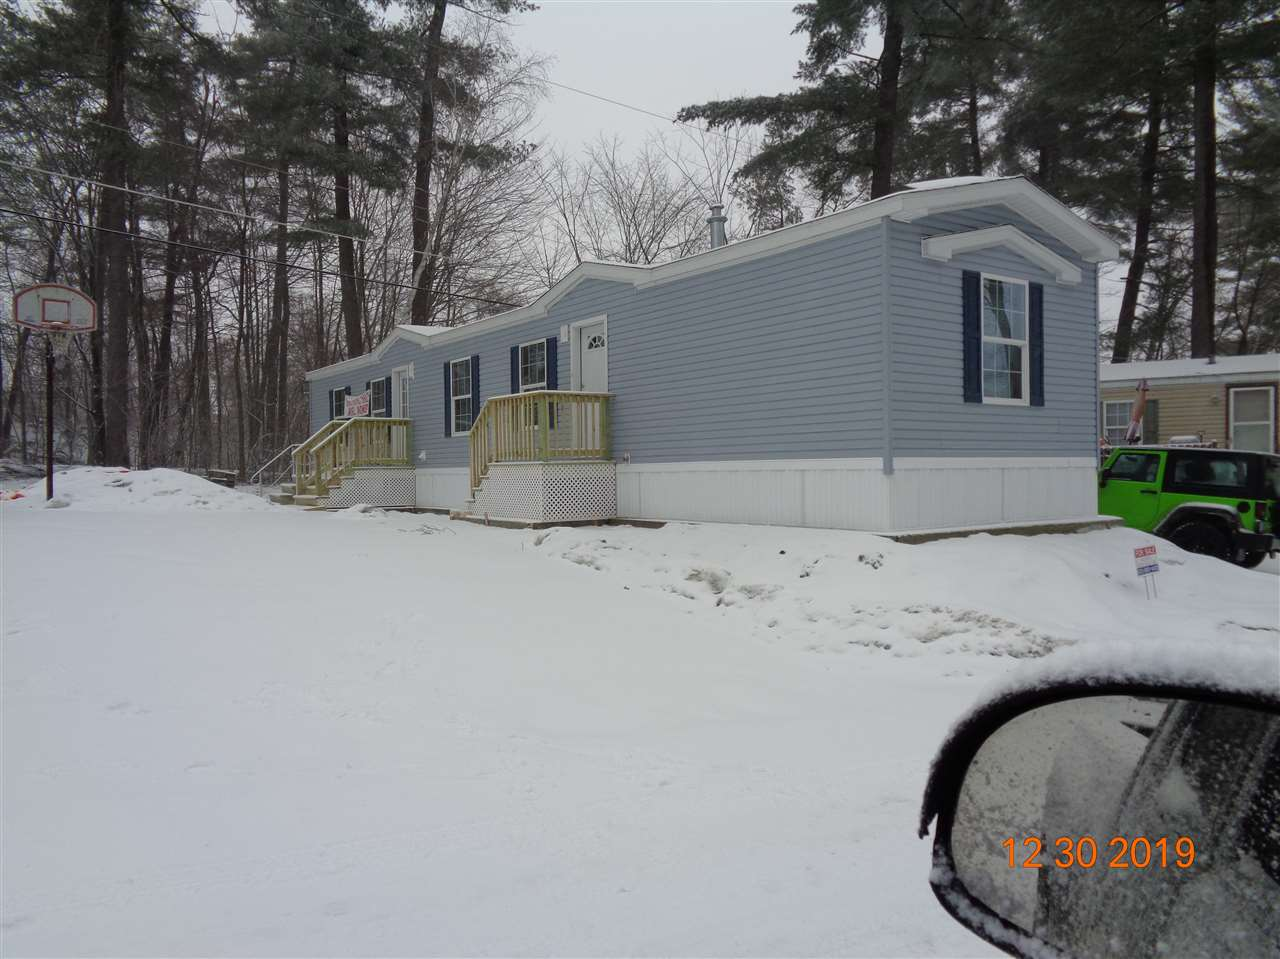 MLS 4788735: 5 Emerald Drive, Merrimack NH